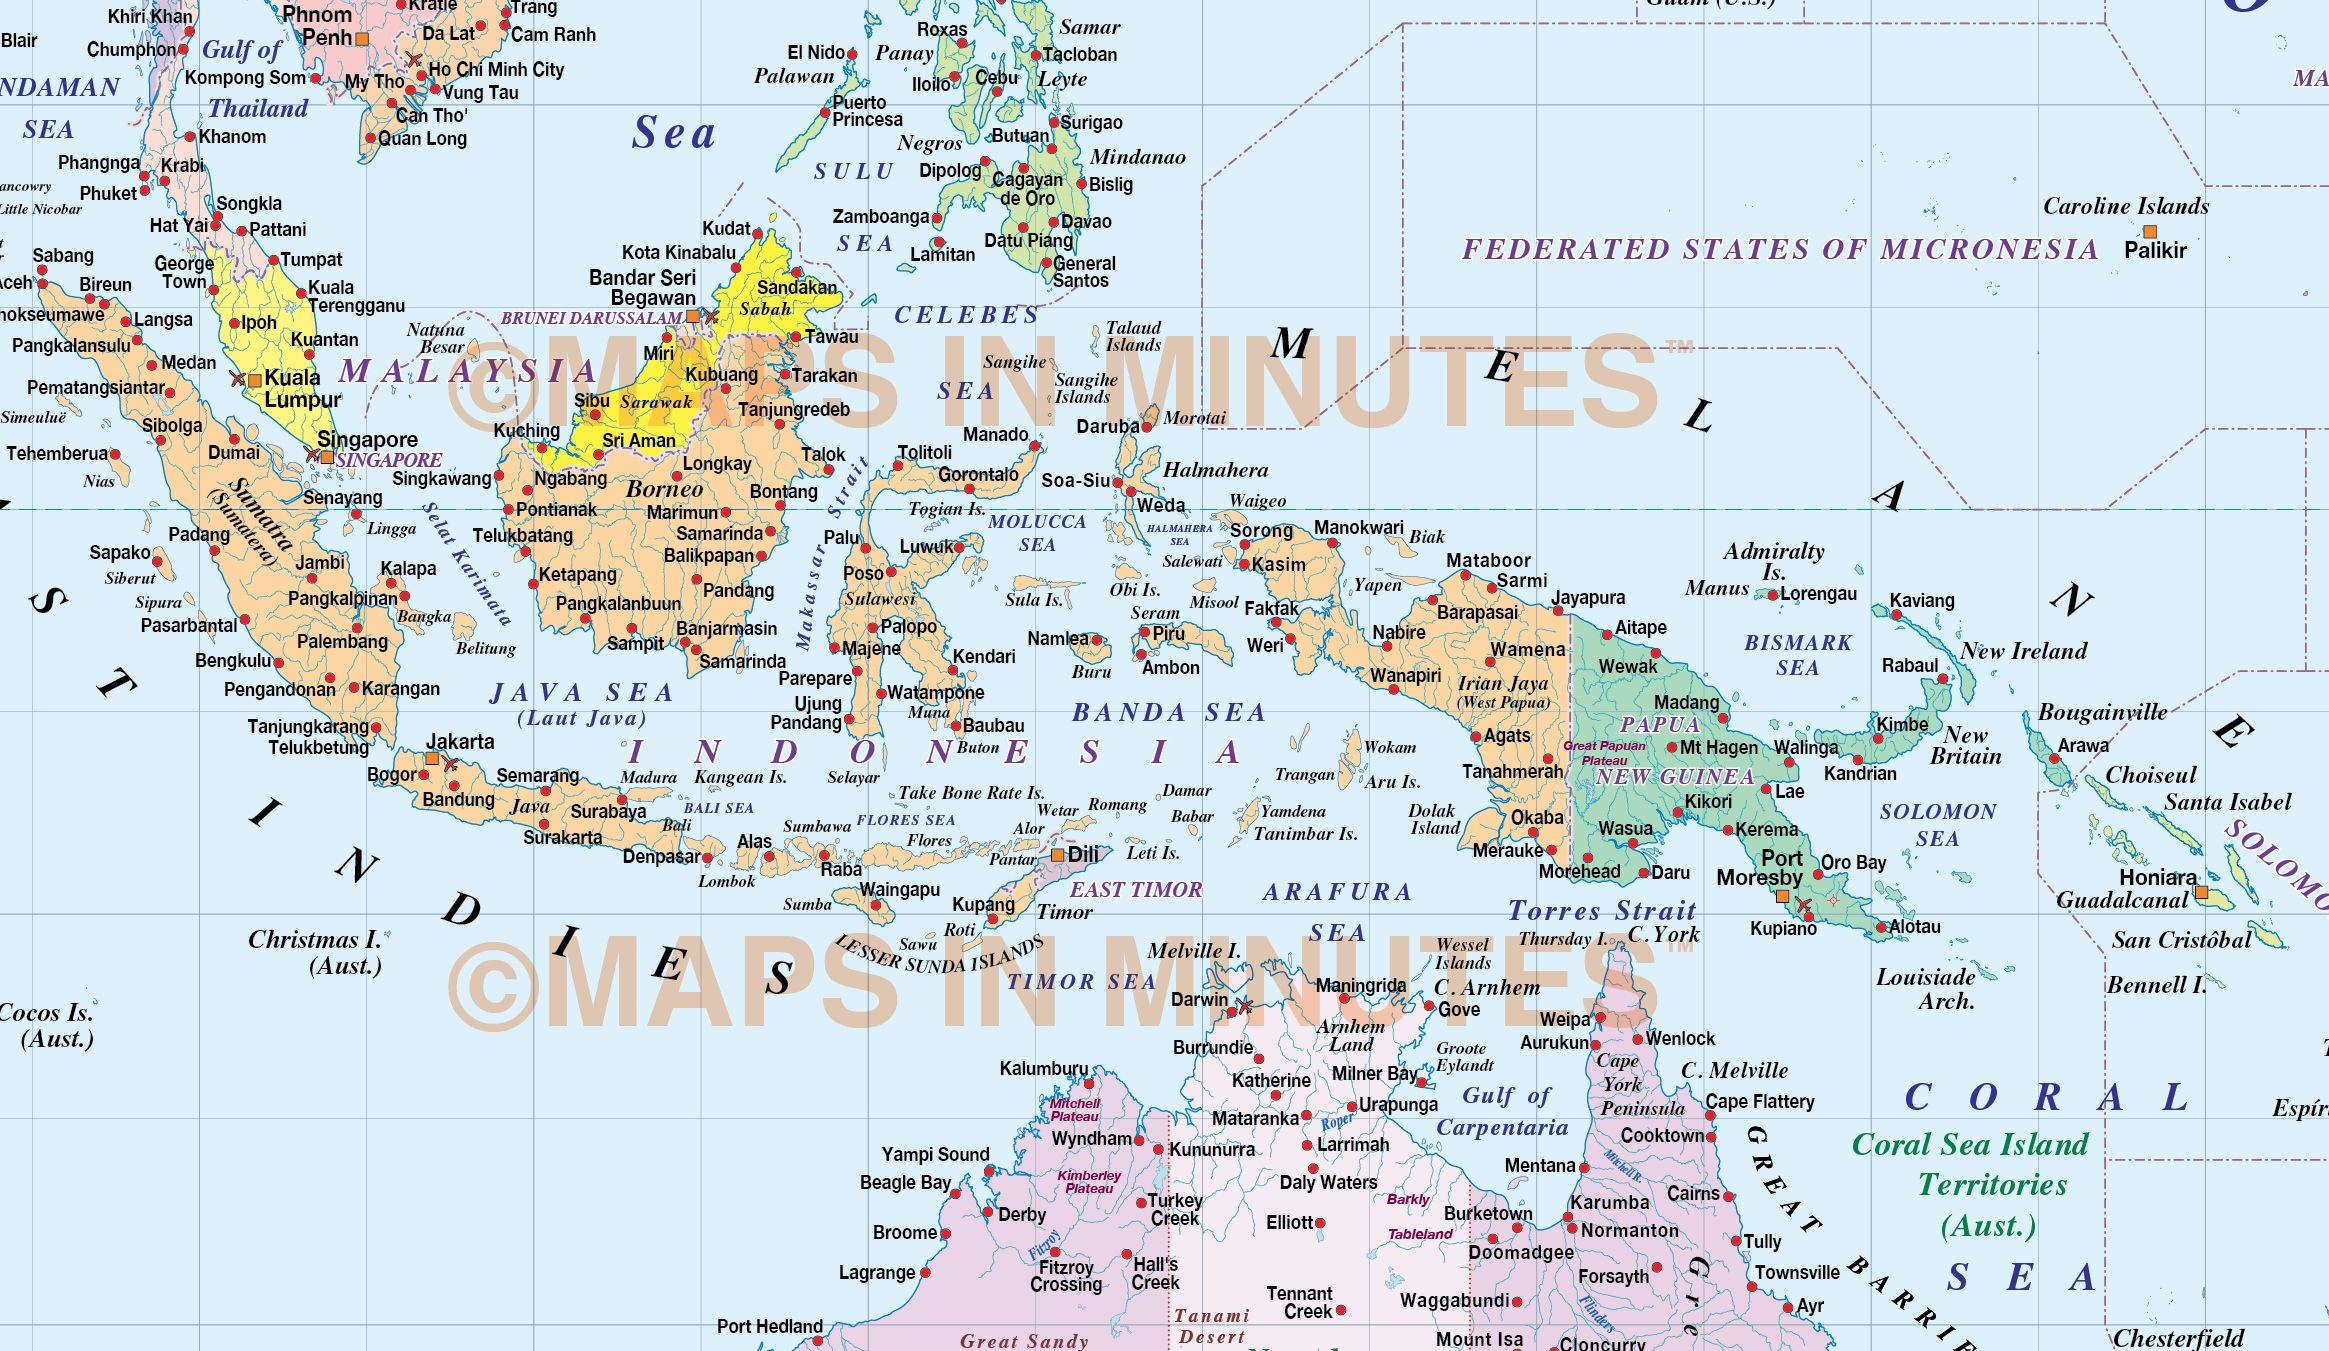 Large Detailed World Map.World Vector Maps In Illustrator Ai Format Large Detailed Plus